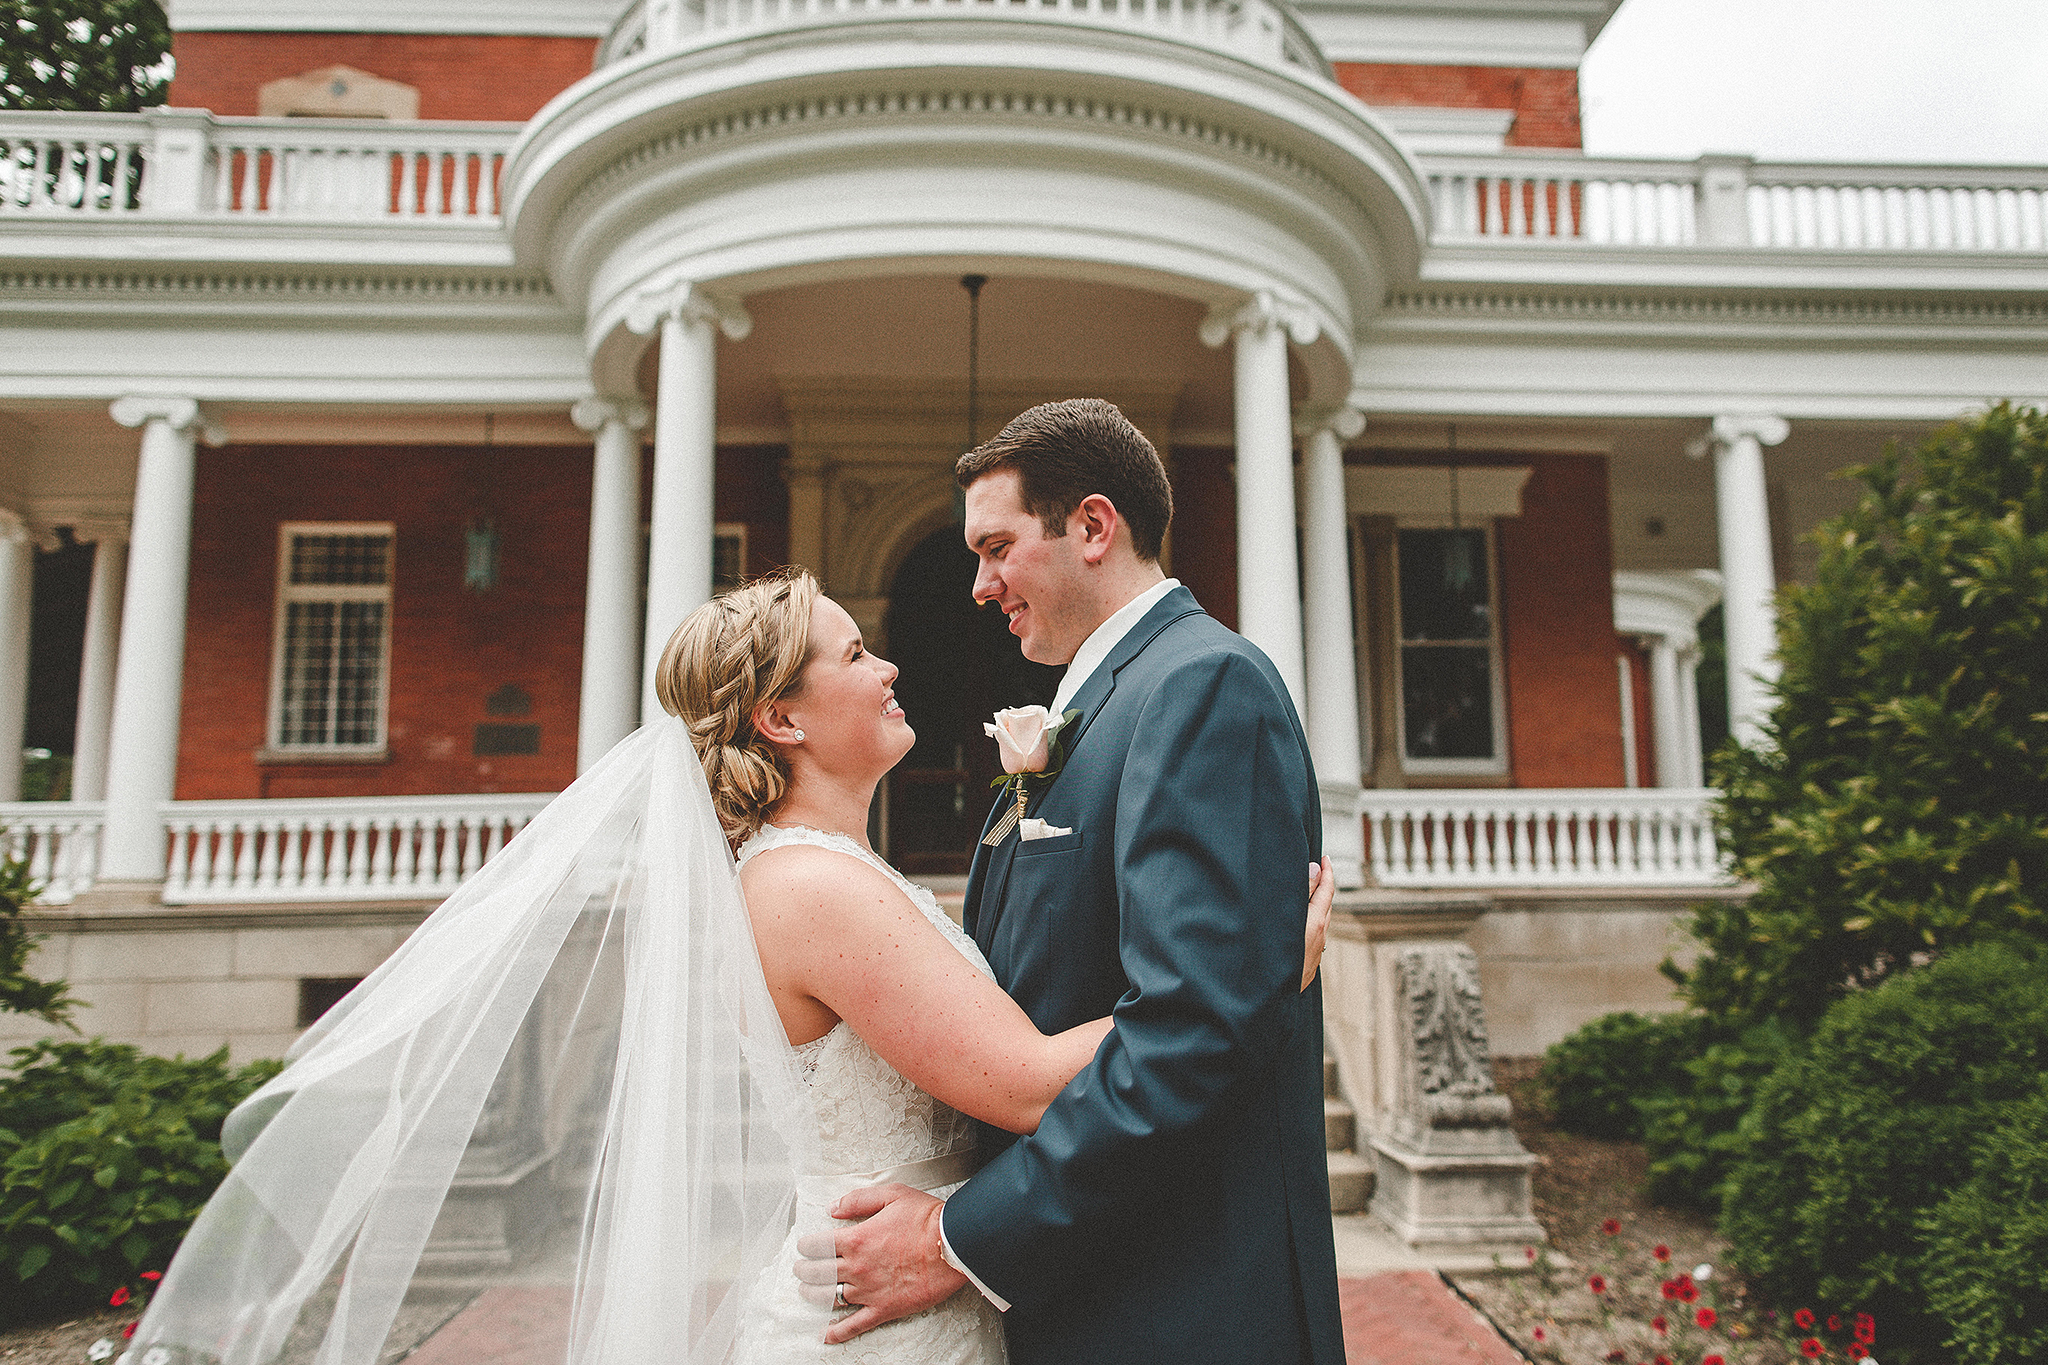 portrait of bride and groom facing each other smiling, veil blowing | ellwood house, dekalb, il photographer